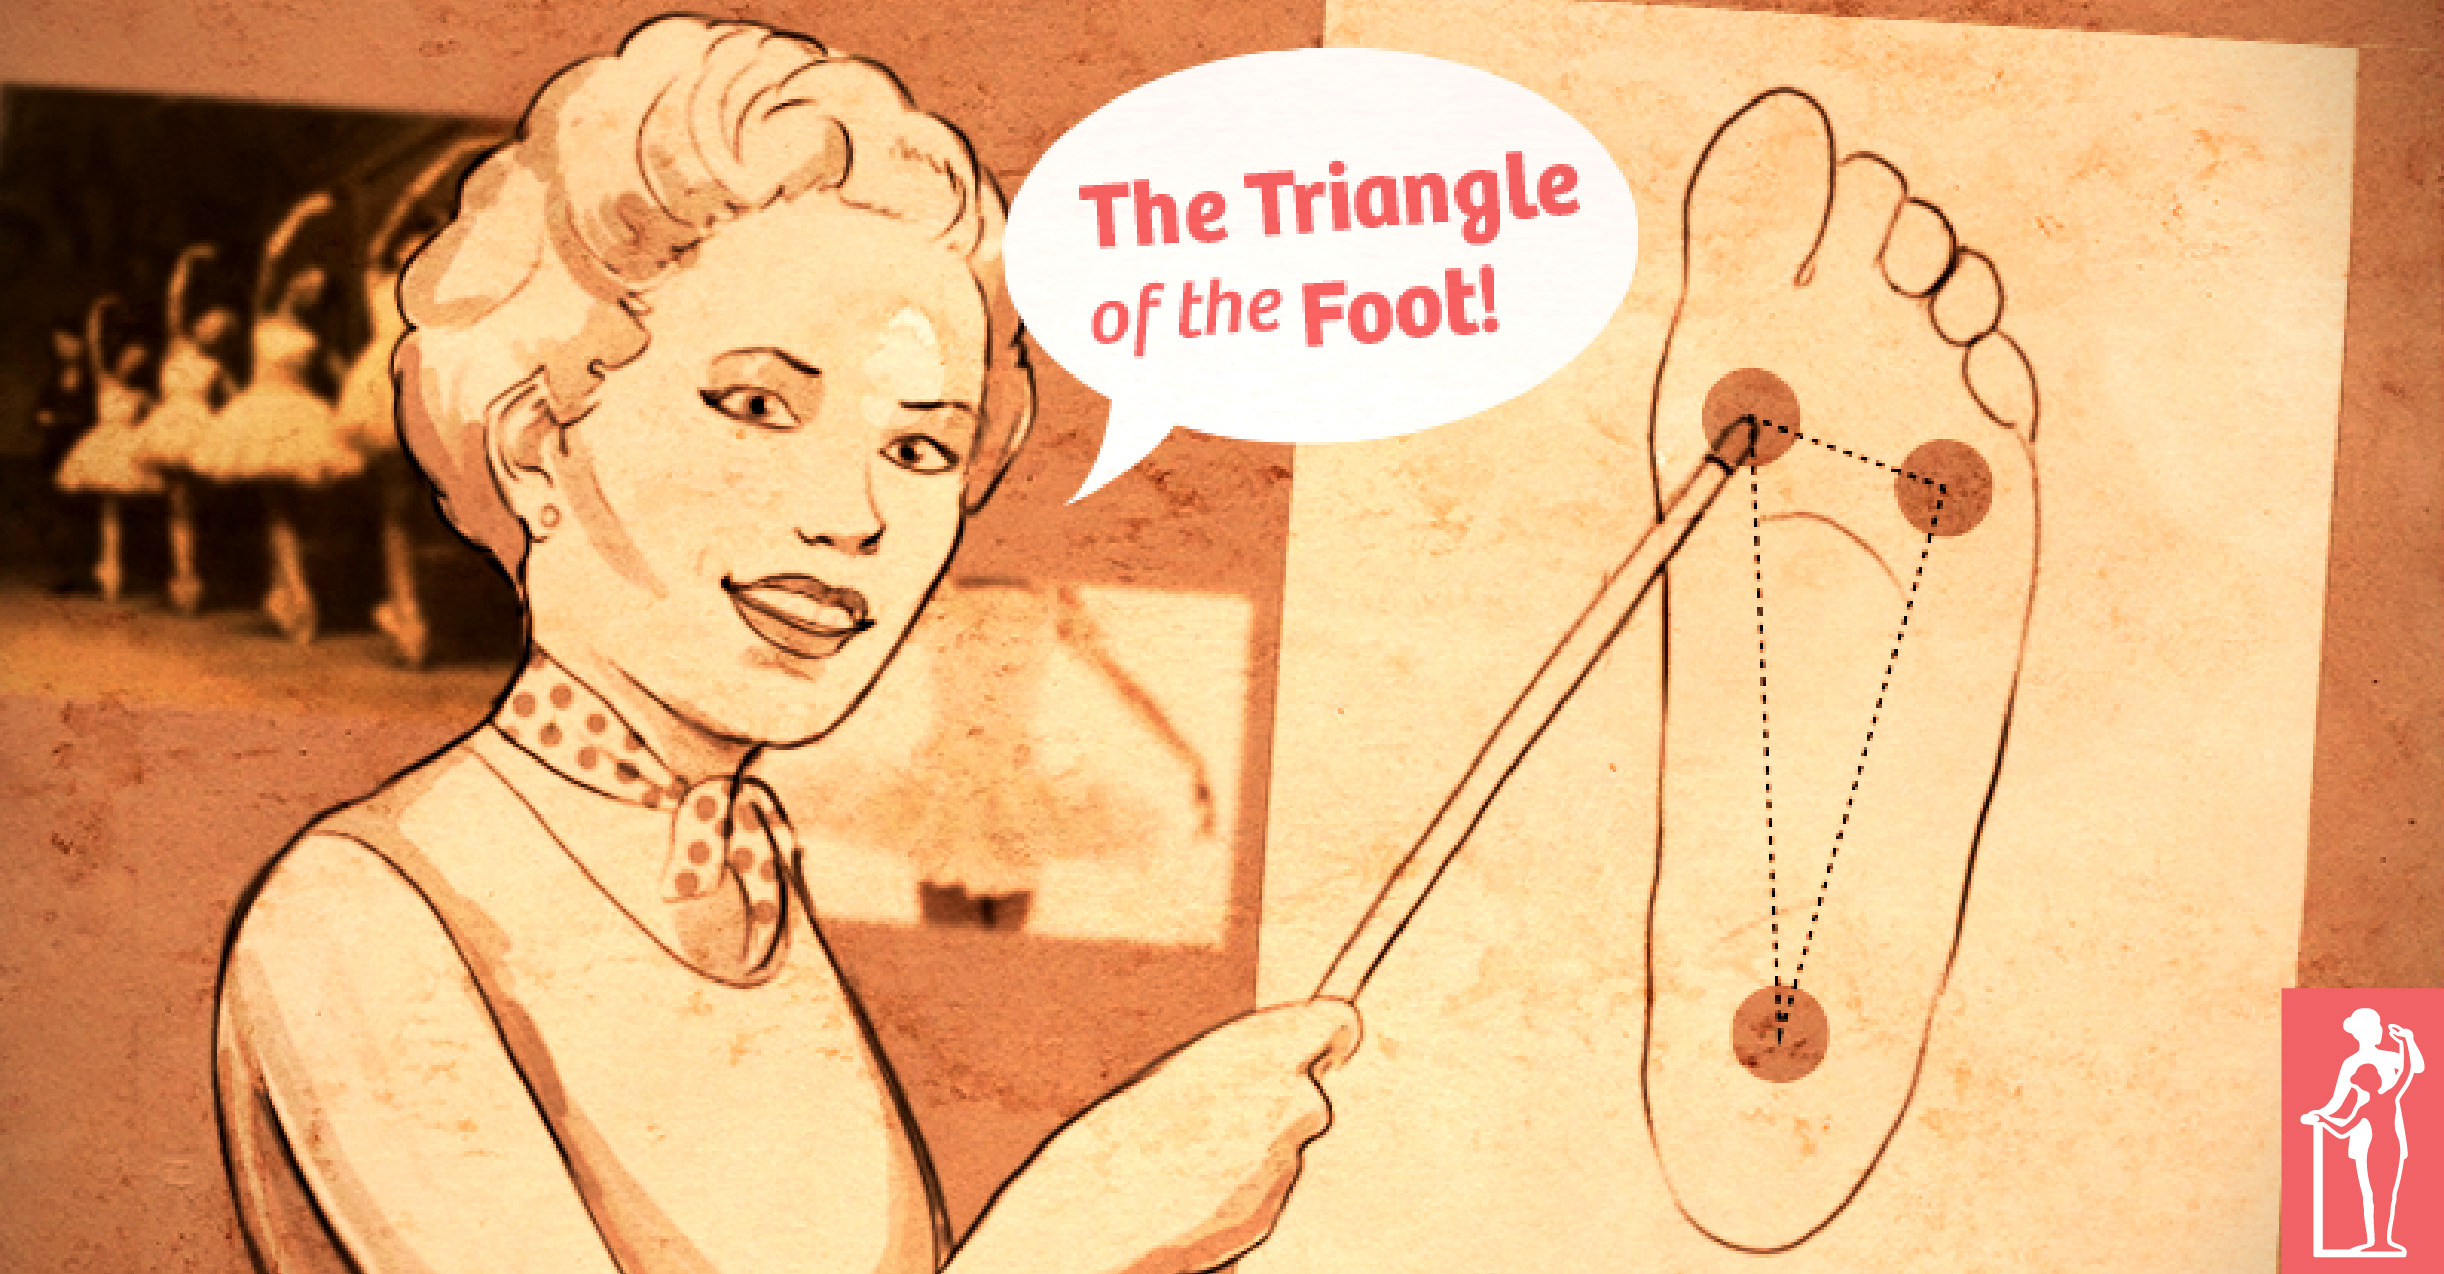 Triangle of the Foot